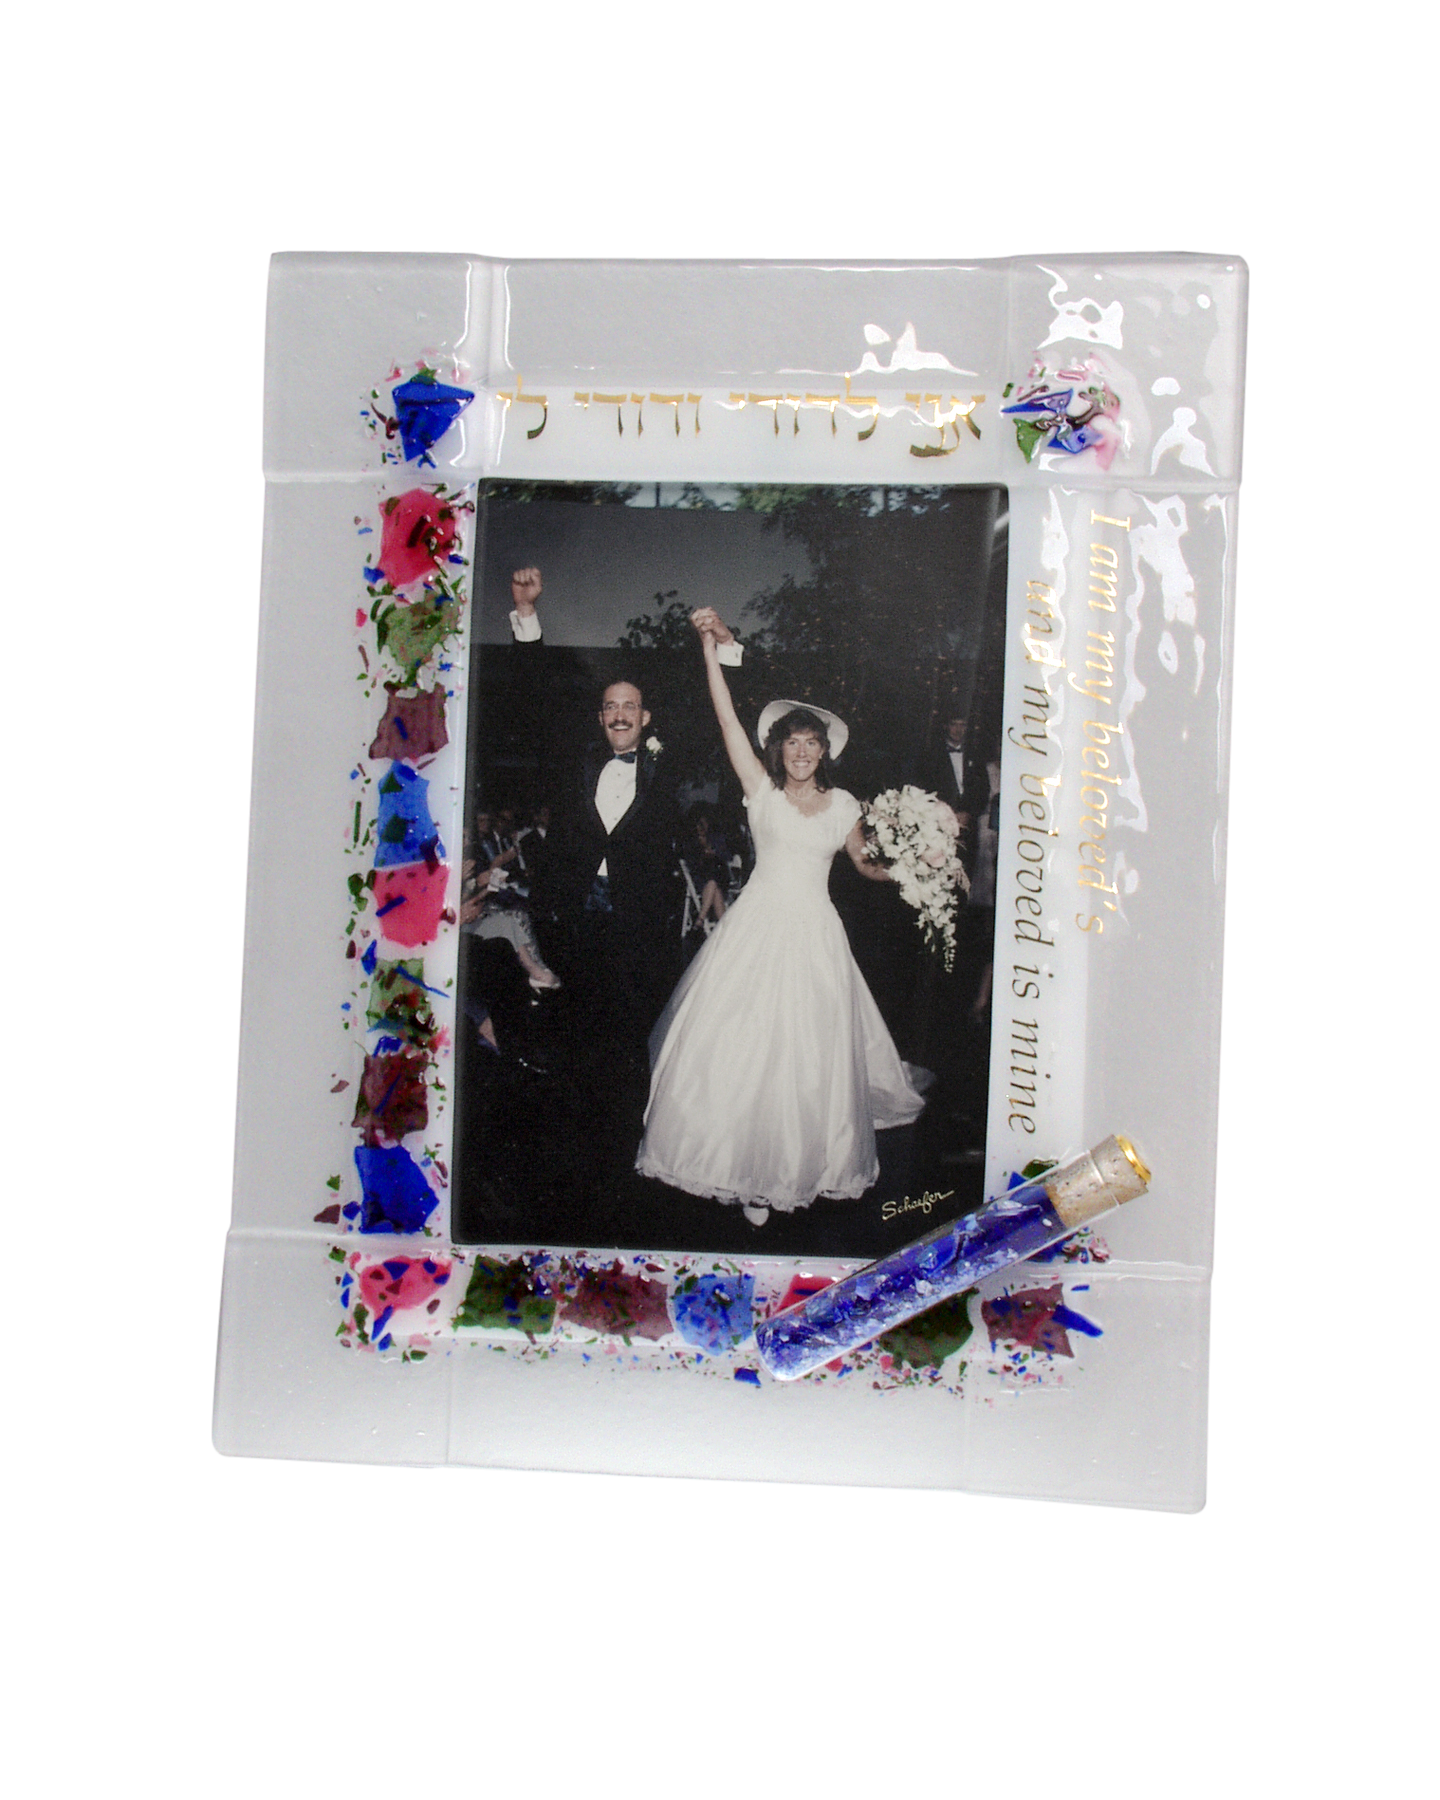 Jewish Wedding Keepsake Frame for the shards from the break glass - Floral pattern